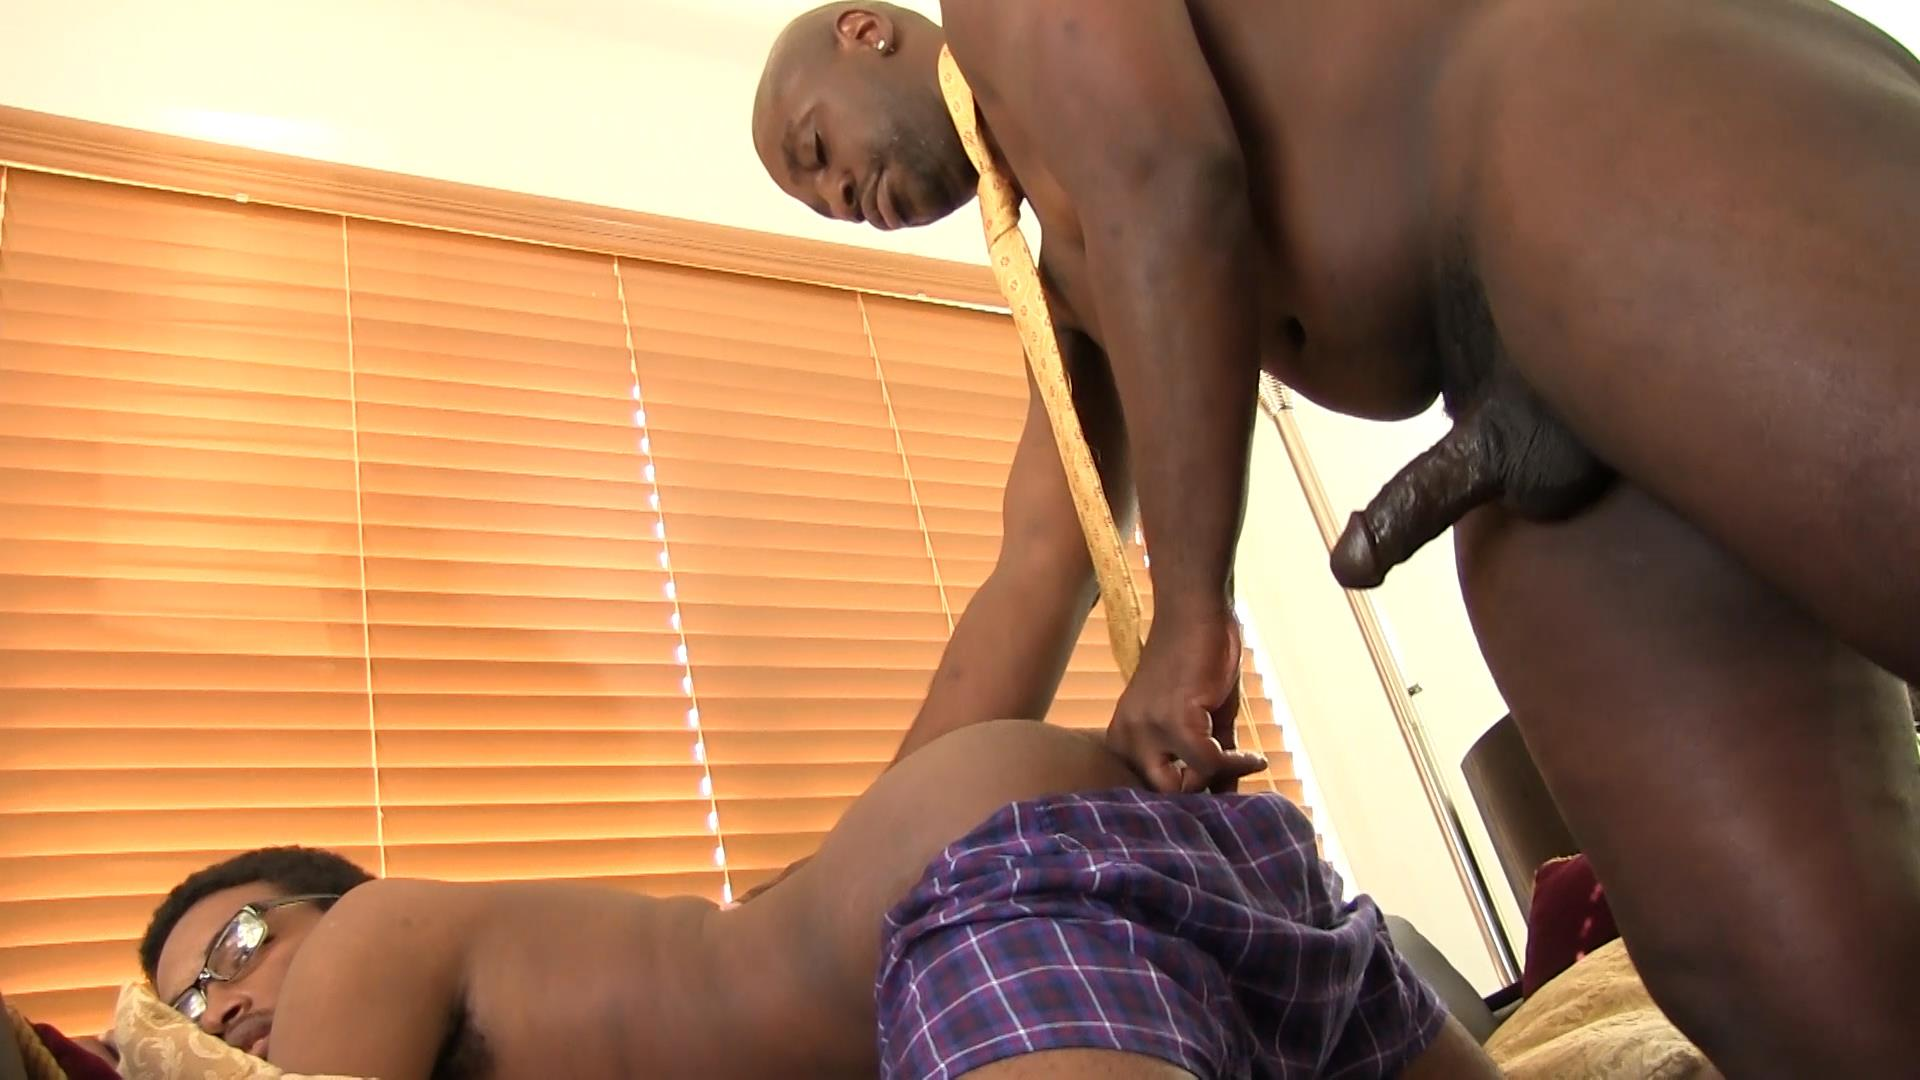 Bareback Me Daddy Daemon Sadi and Donny Ray Black Daddy Fucking A Twink Bareback Amateur Gay Porn 10 Black Daddy Barebacks His Black Twink With His Big Black Dick